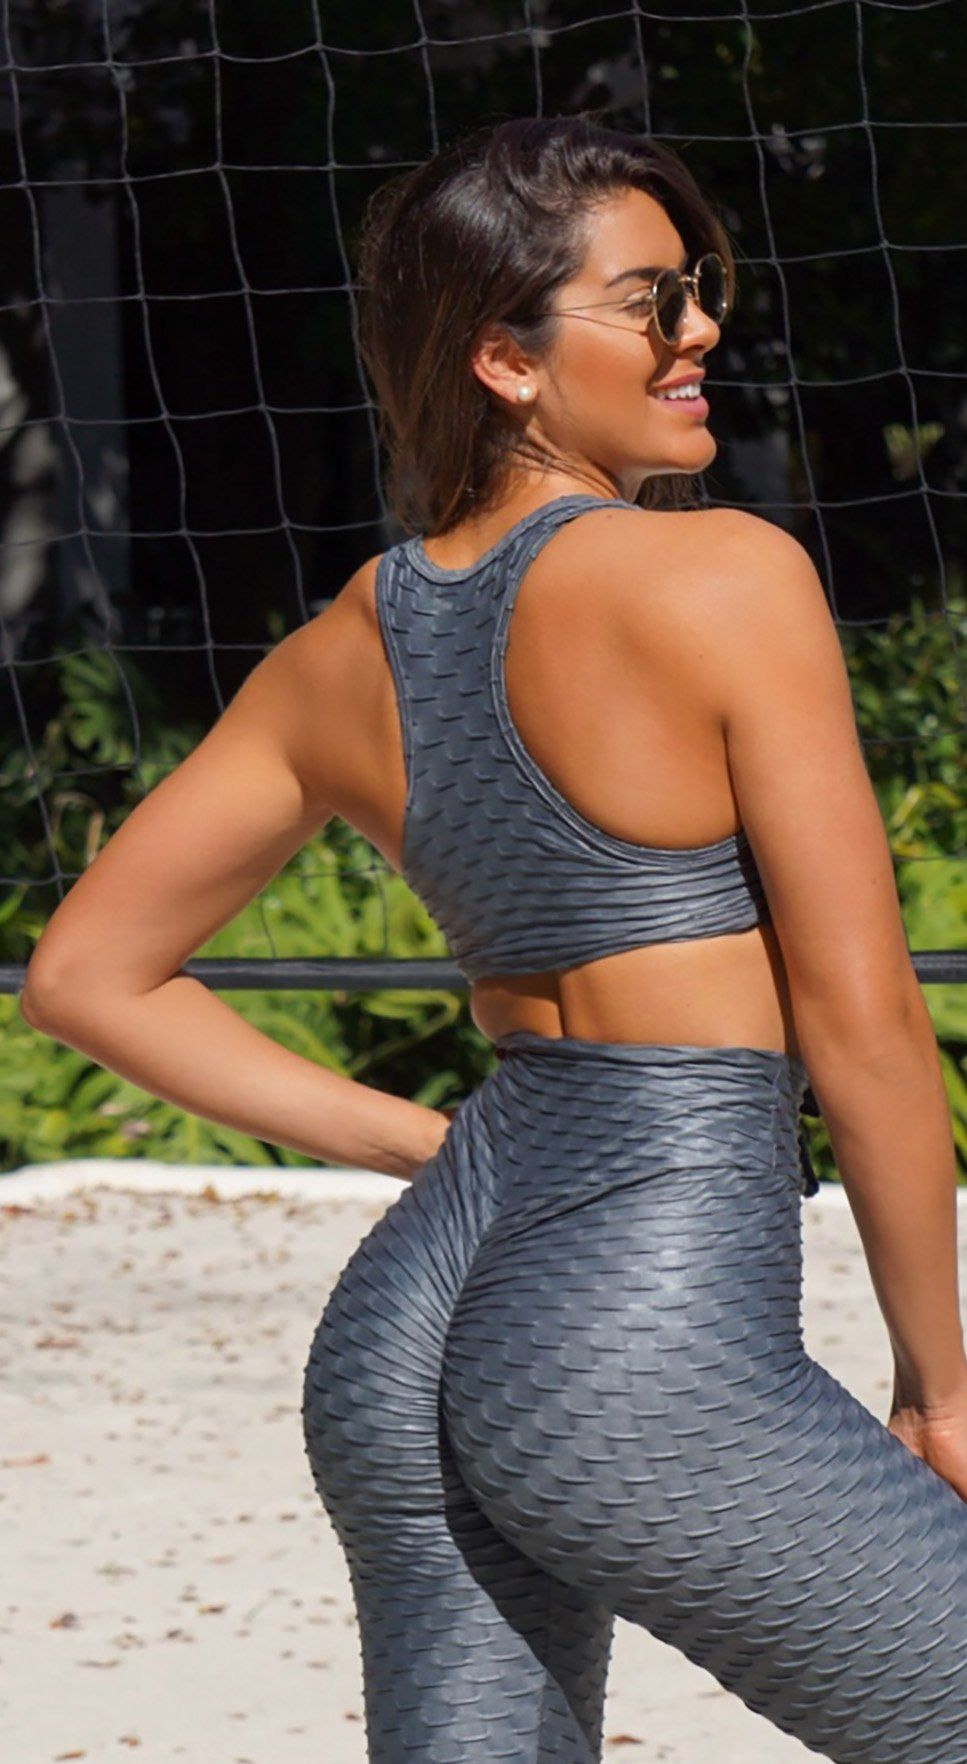 Sports Bra - Glam Honeycomb Shiny Gray